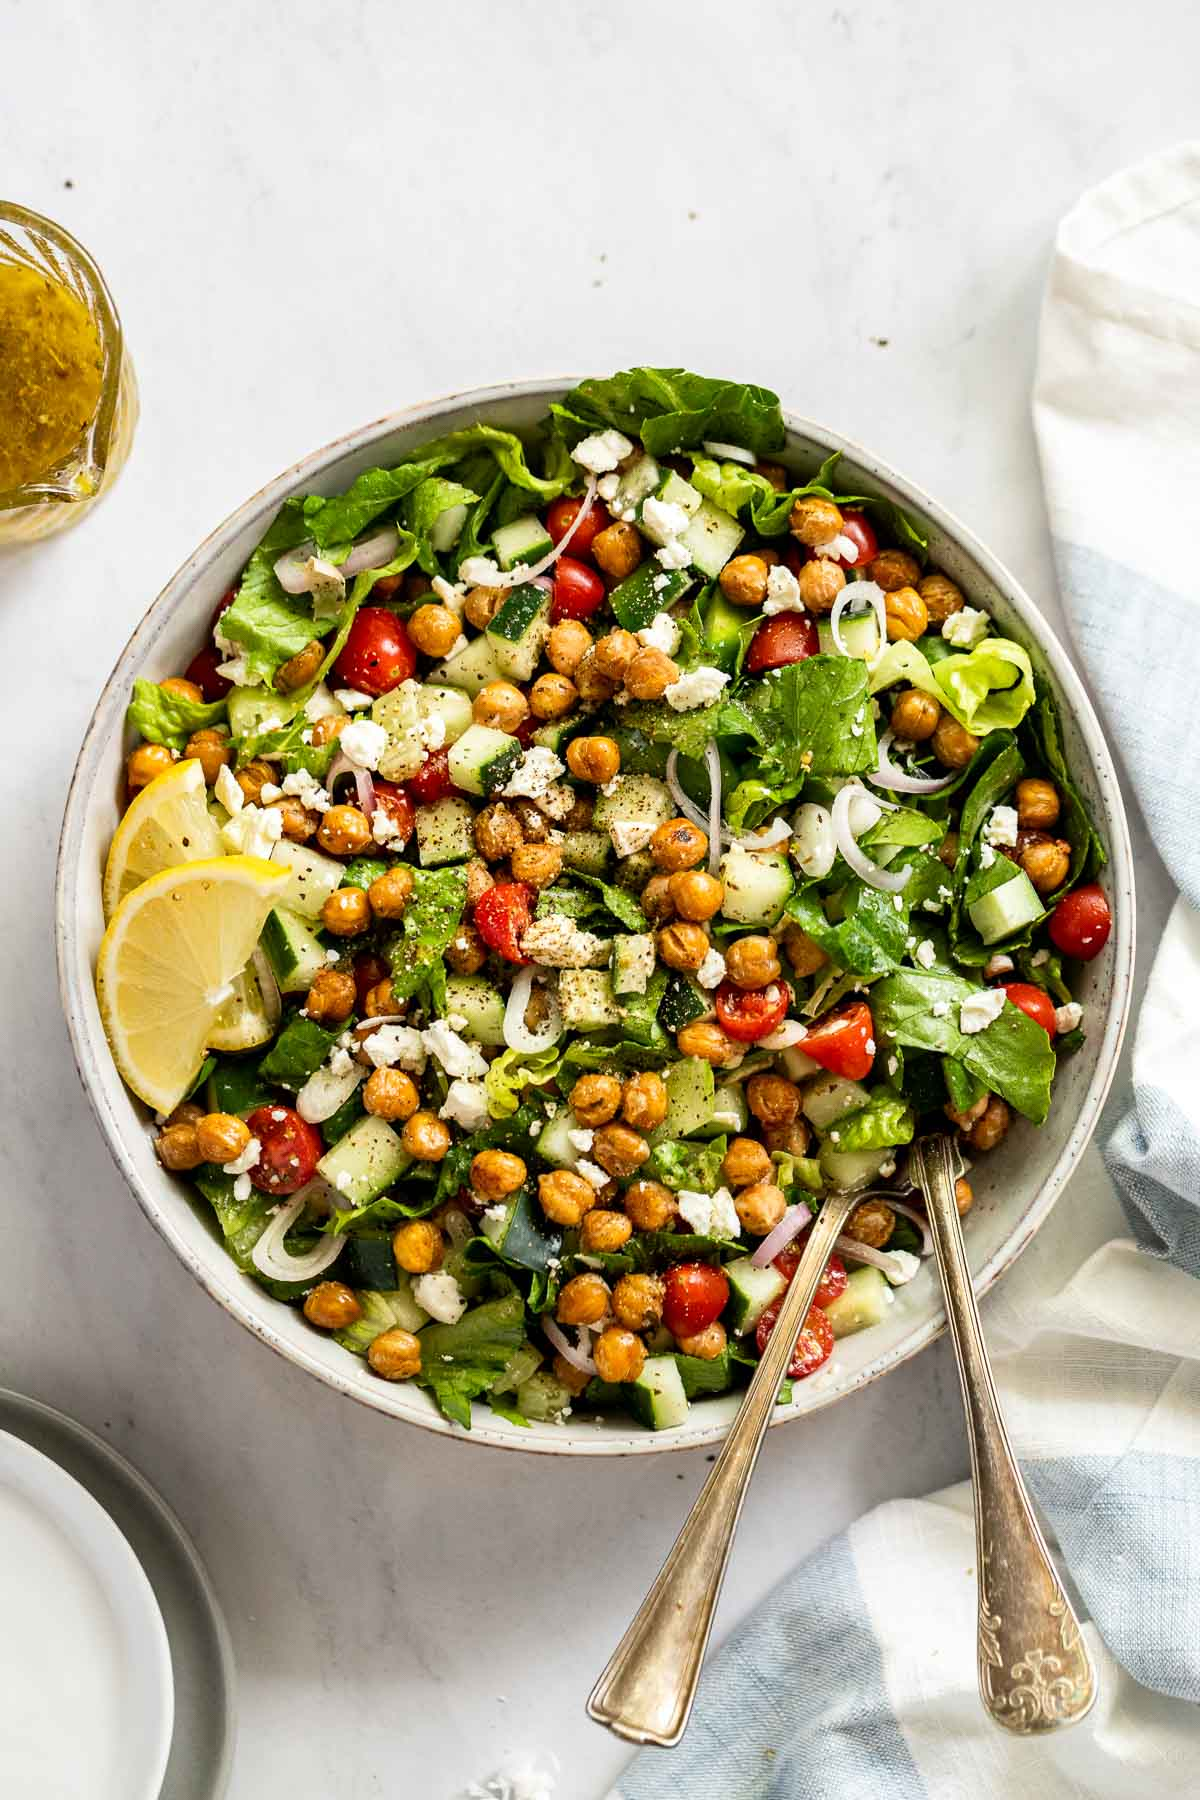 Bowl of salad with spoon and fork sticking out of it next to a linen.